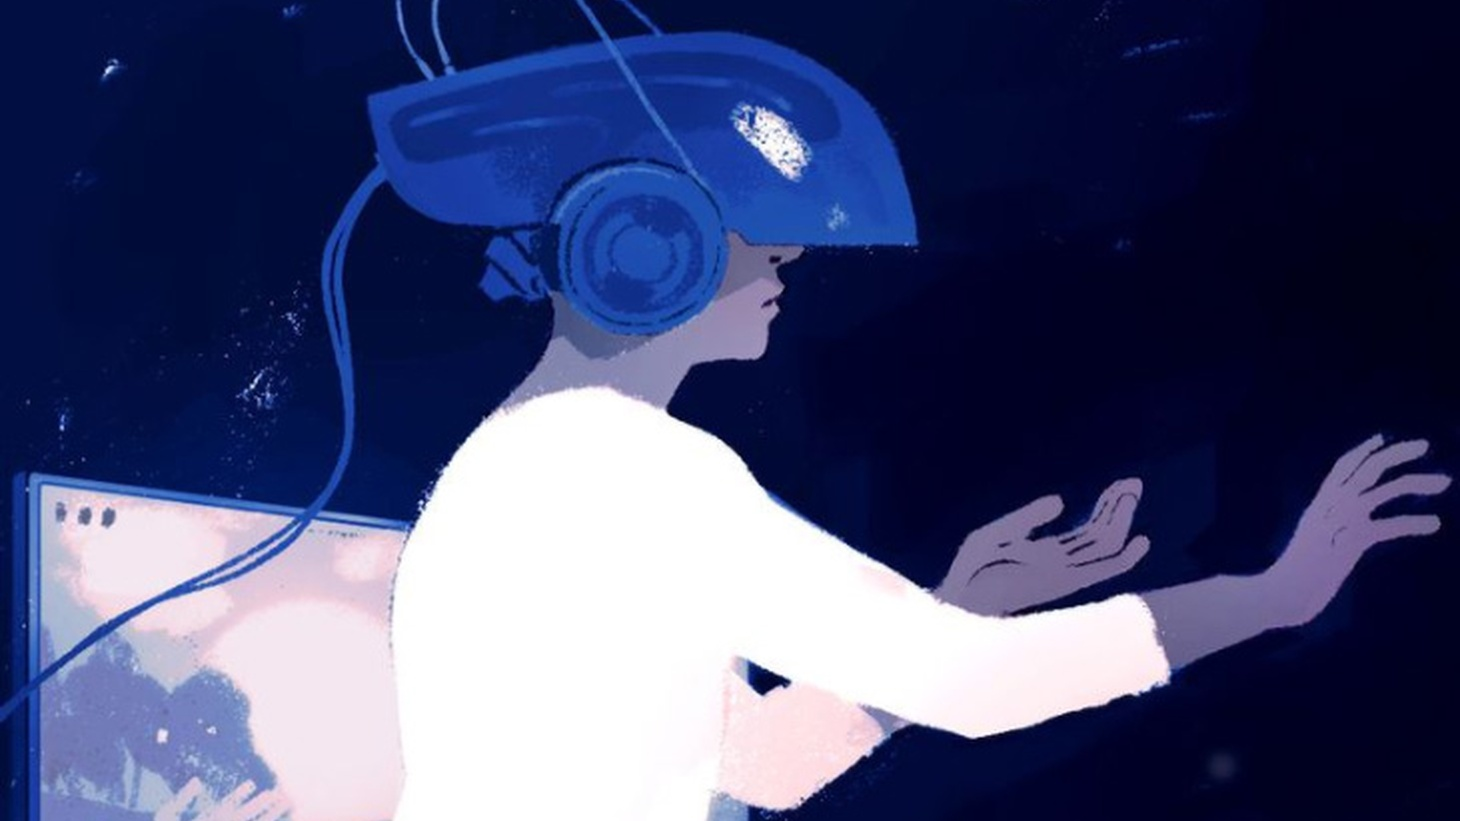 Author Siddhartha Mukherjee explains how genetics and environment shape our daily lives. And comedian Reggie Watts gives us an insider's view on virtual reality.